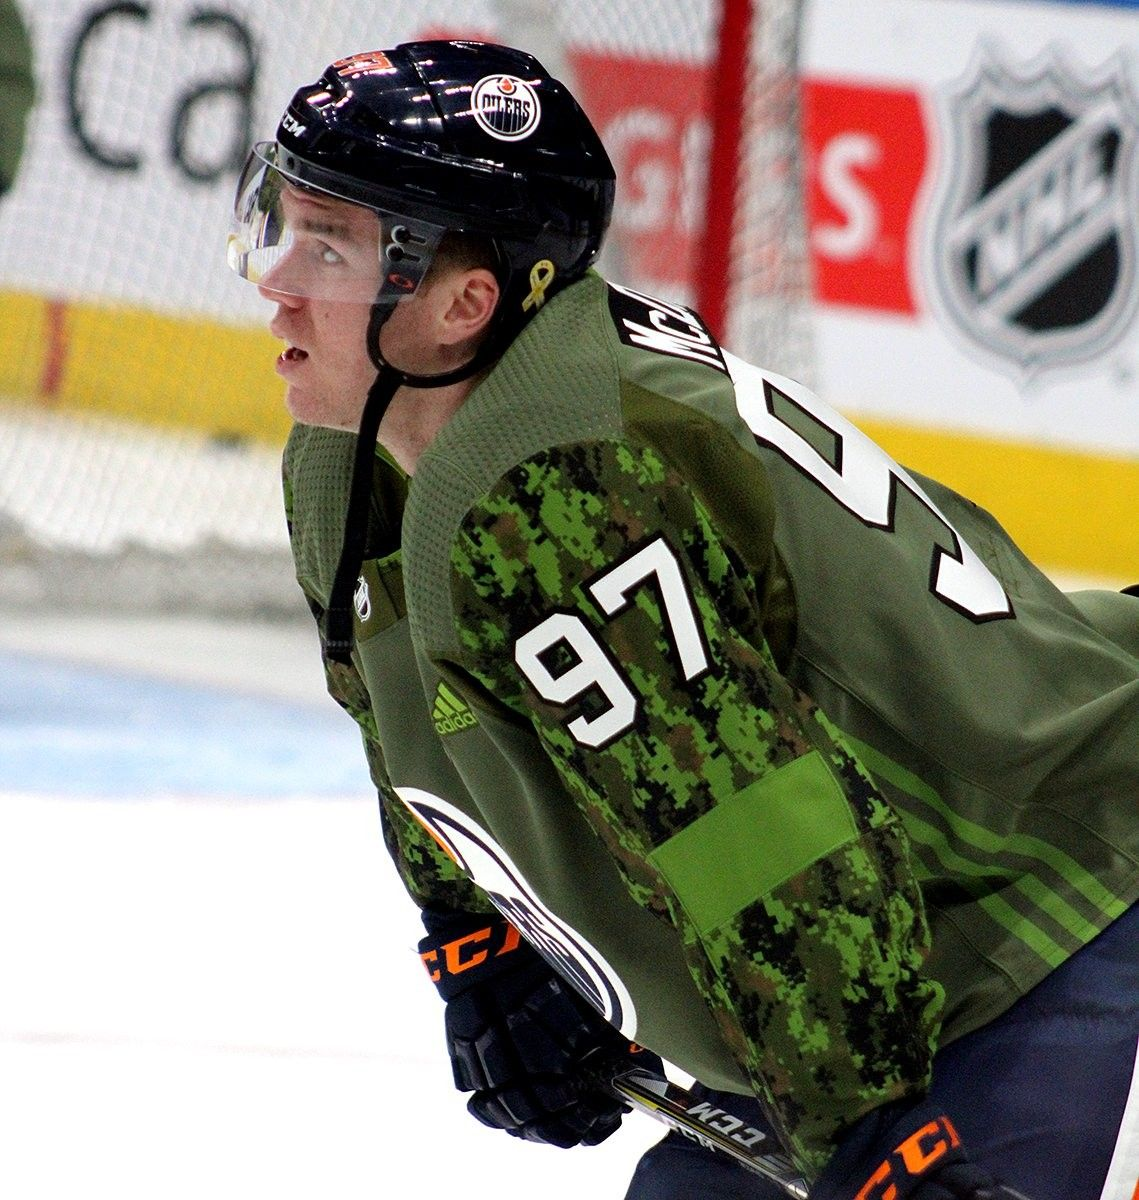 Canadian Forces Military Night Edmonton Oilers Edmonton Oilers Hockey Hockey Fans